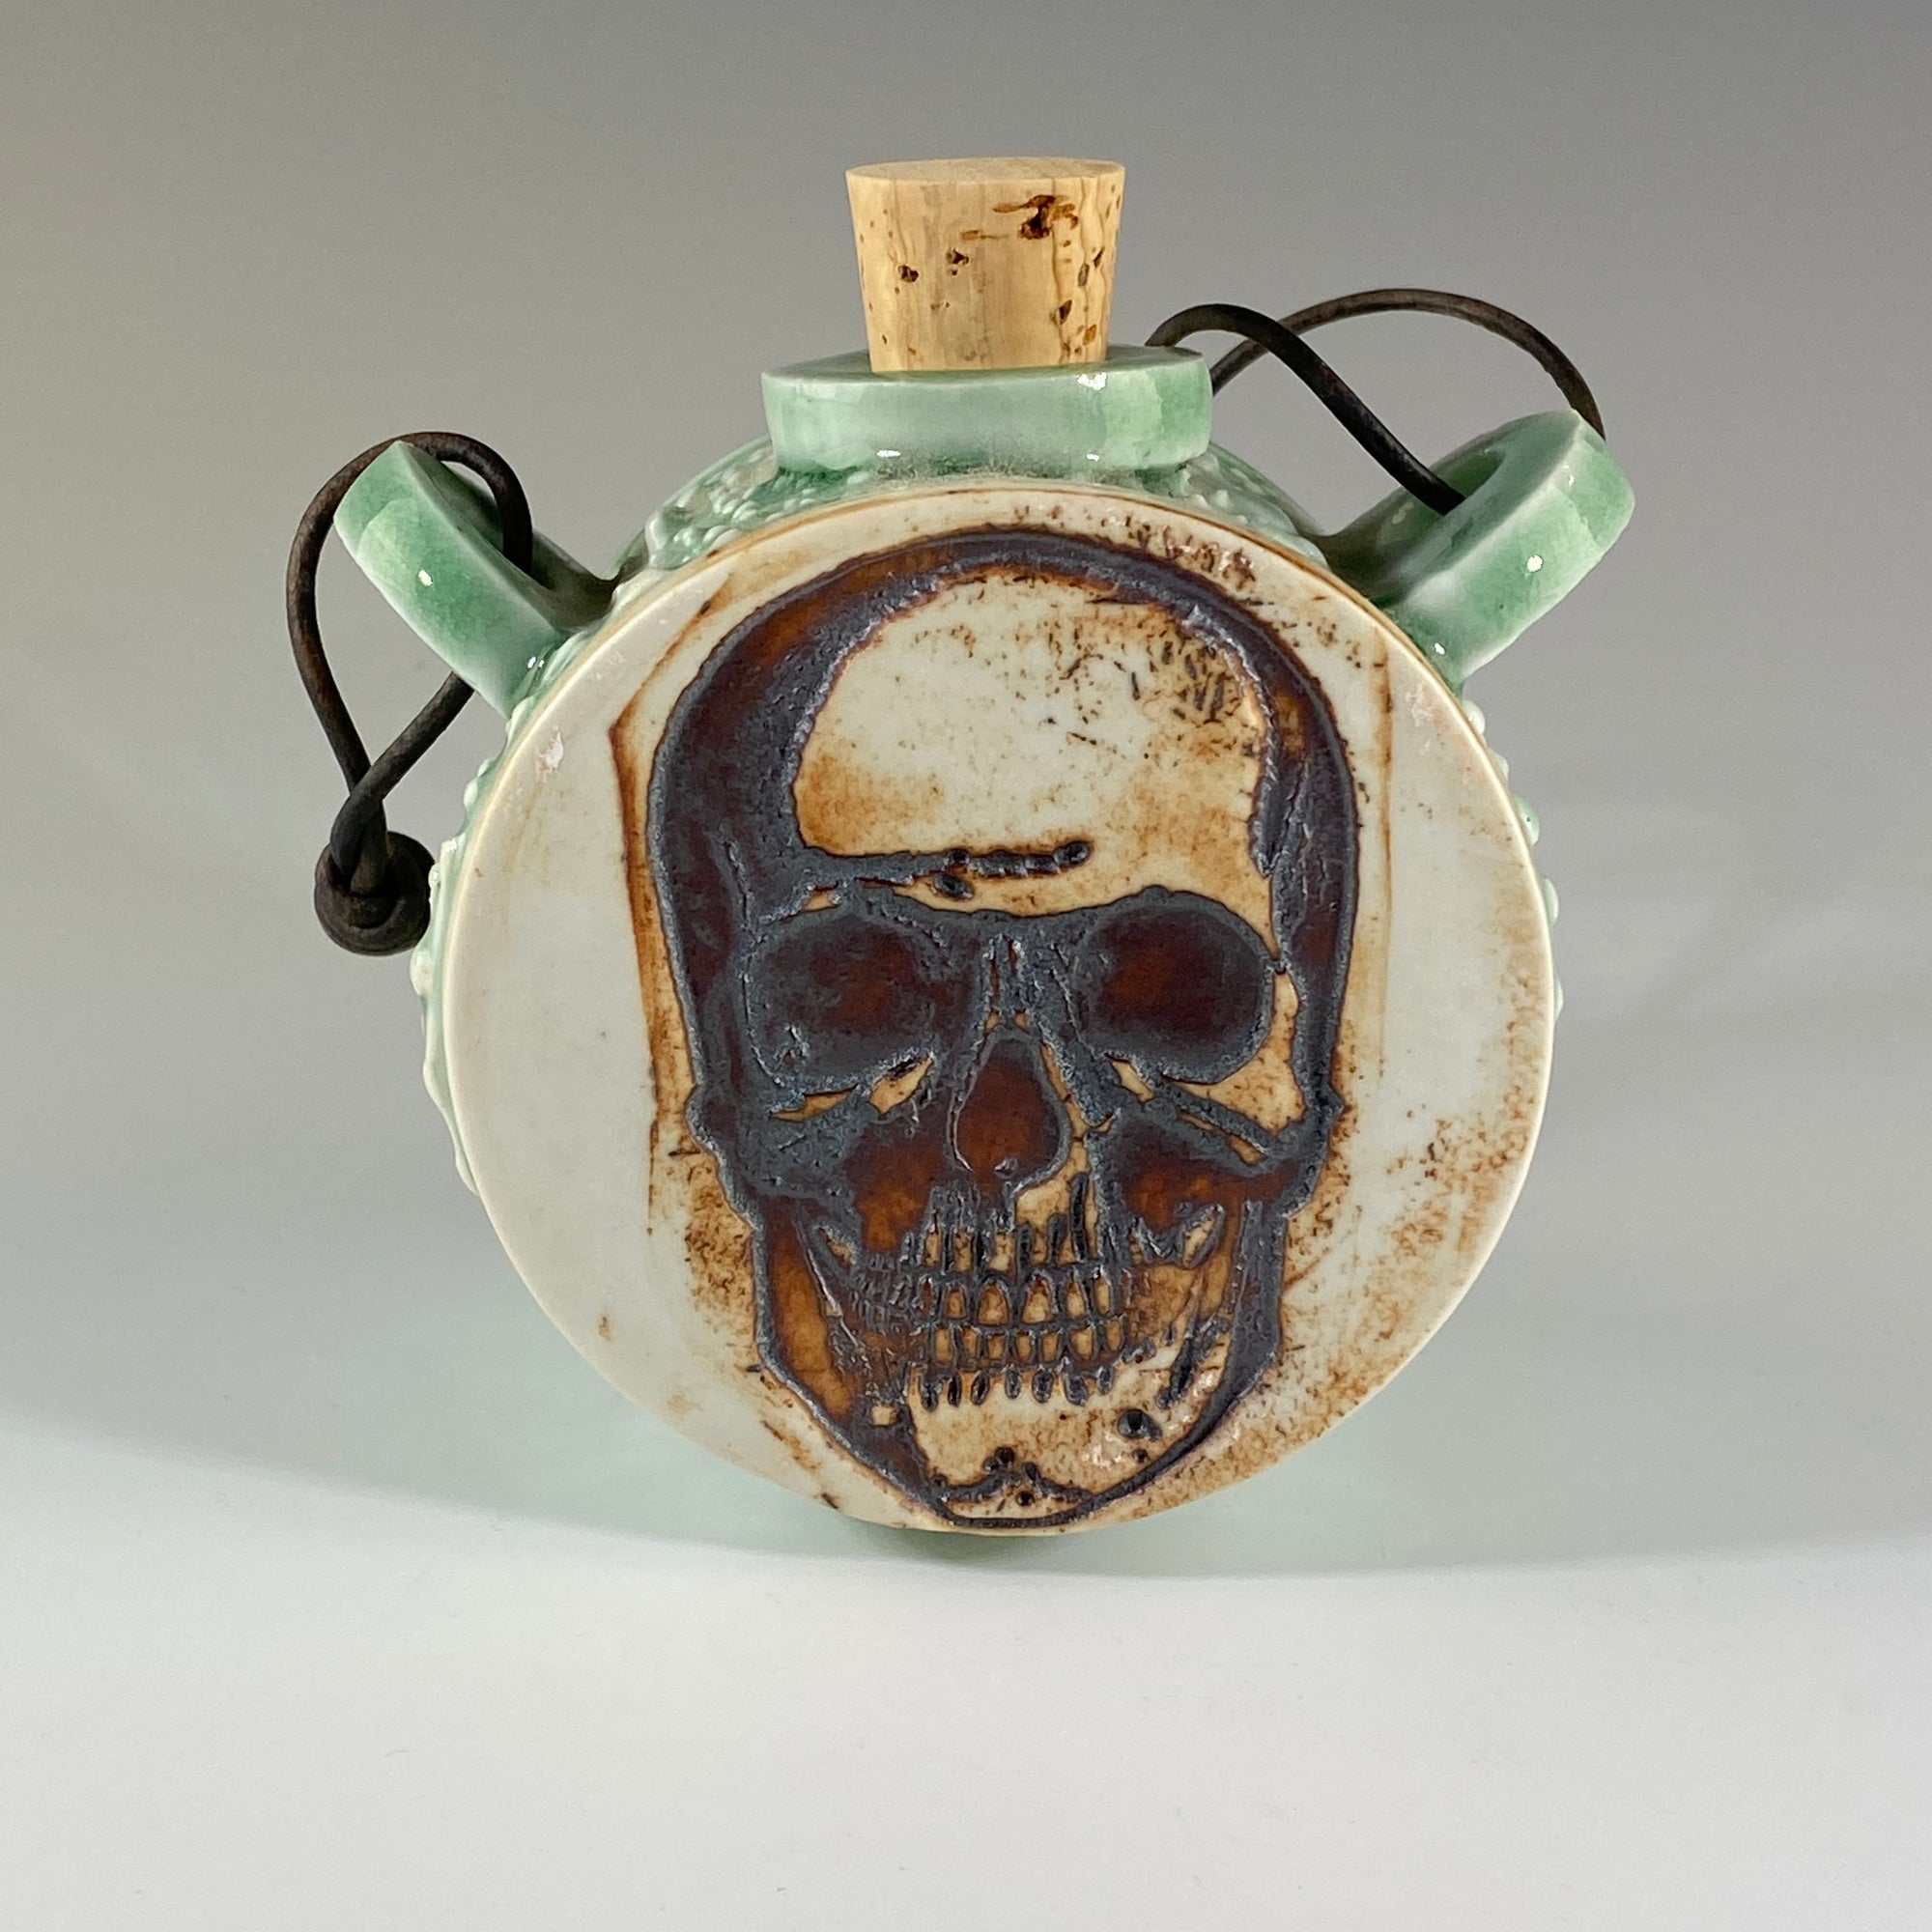 Skull Hanging Flask - Heart of the Home PA